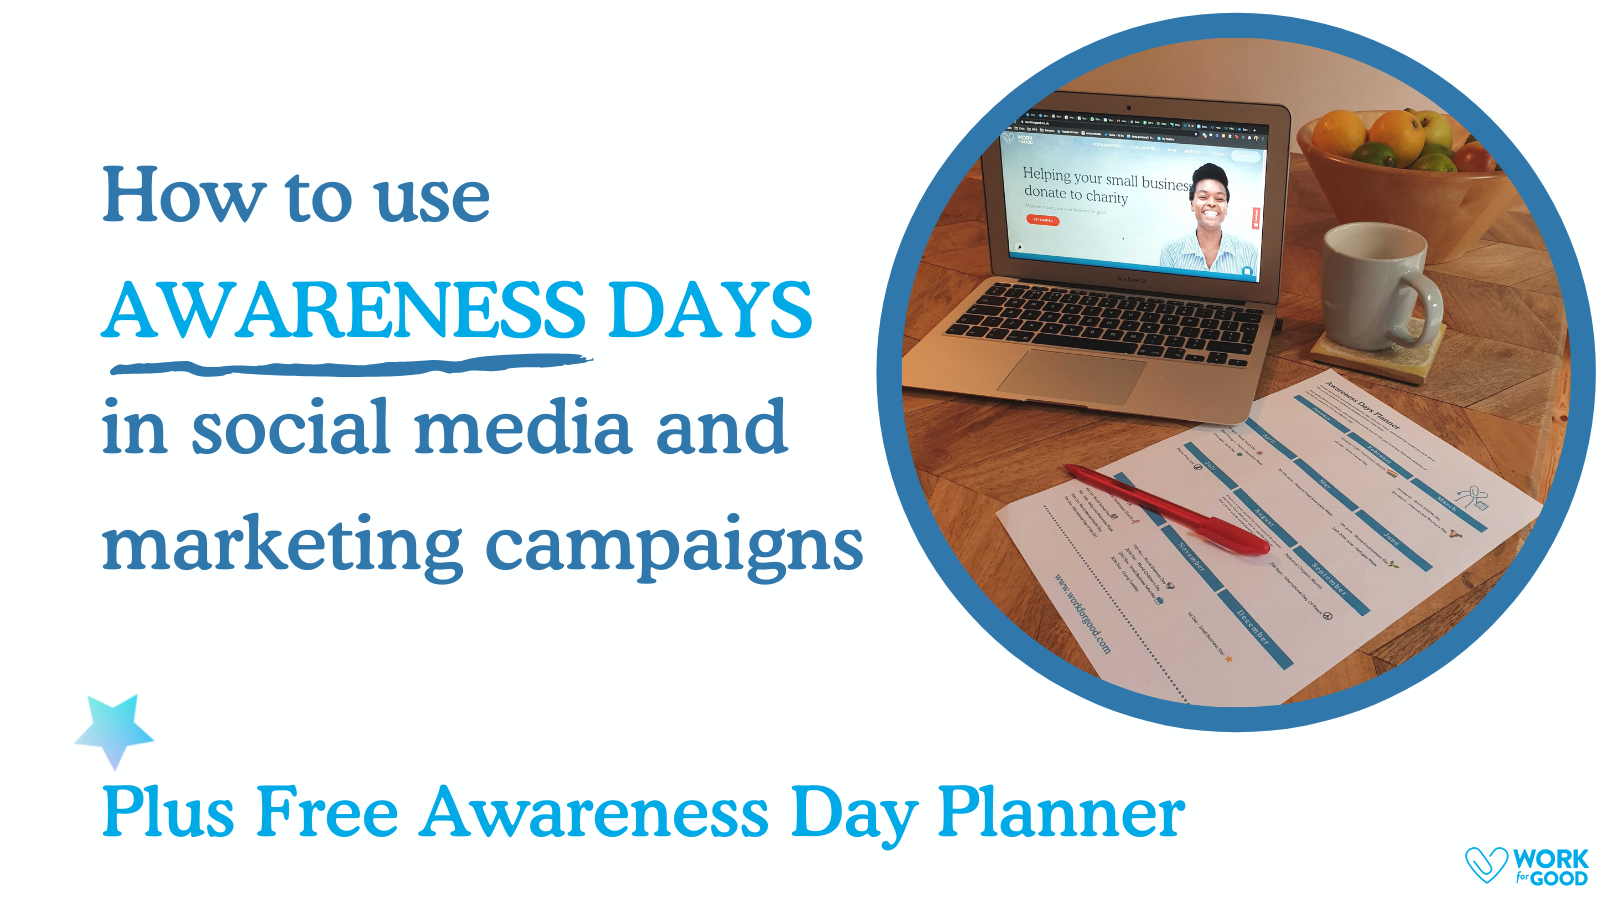 How to use awareness days in social media marketing campaigns